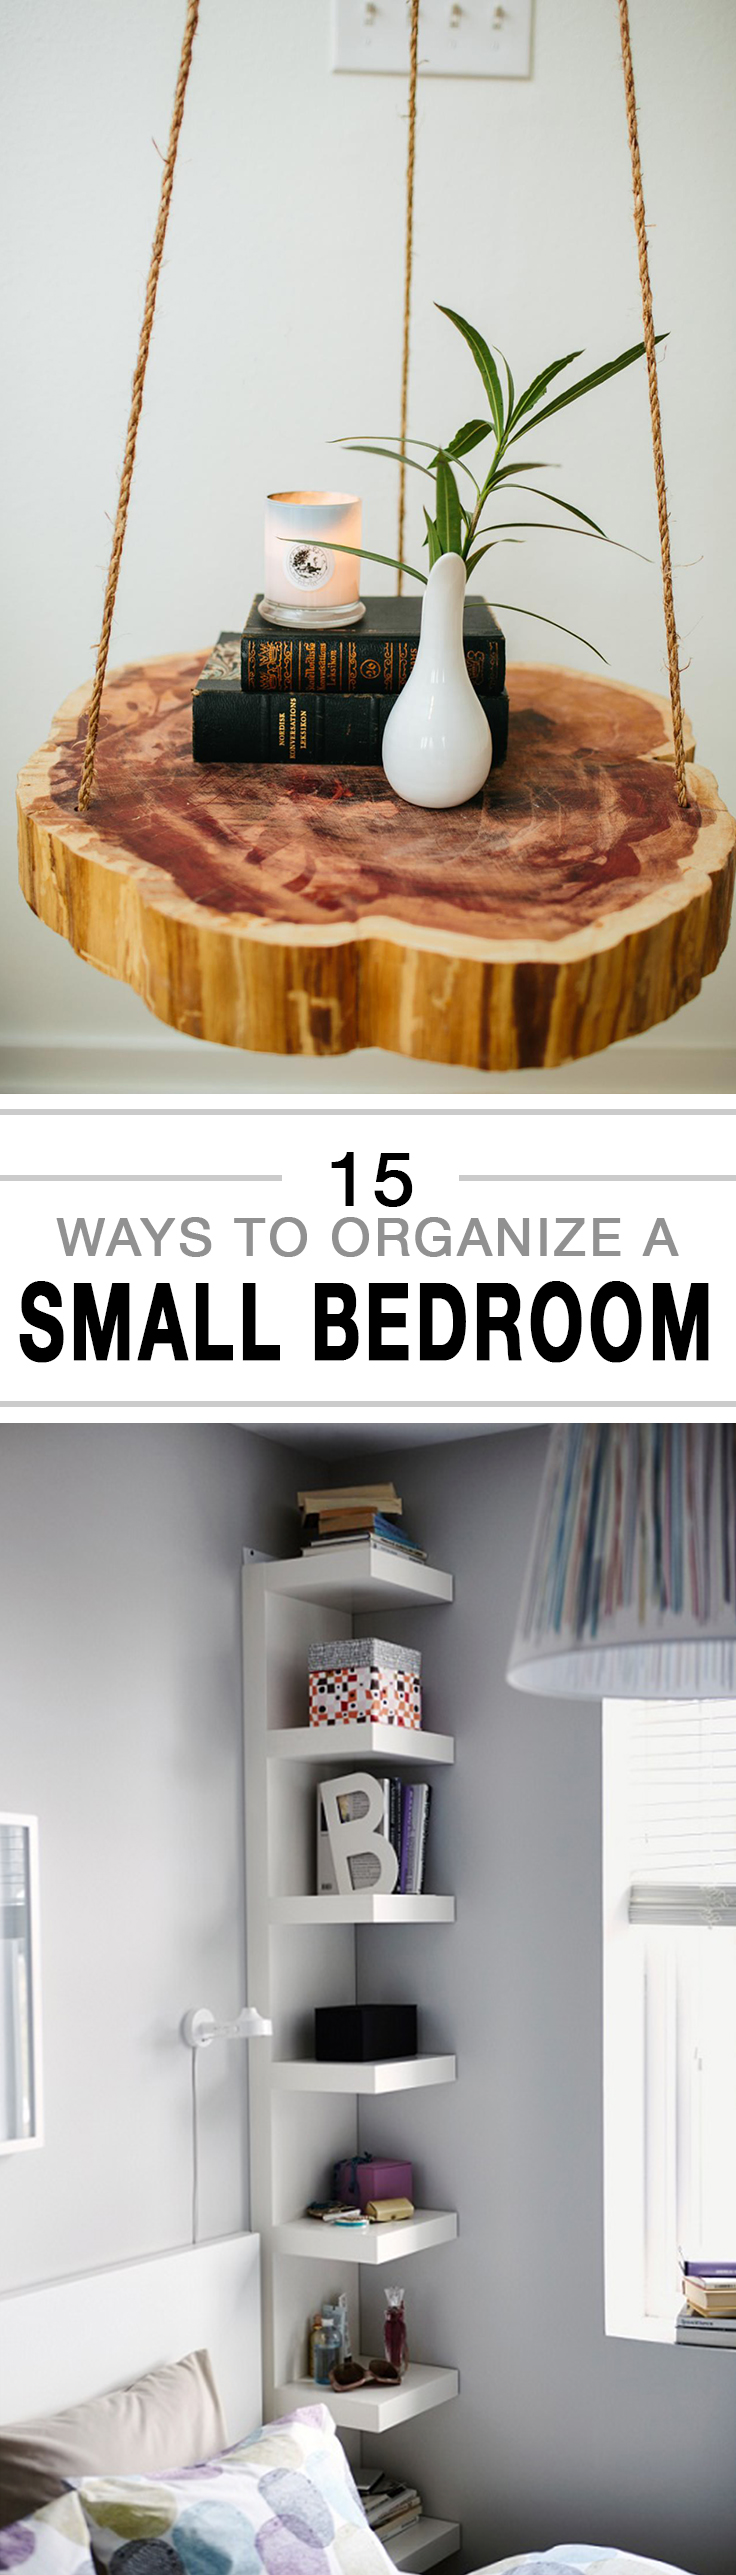 How To Organize A Small Bedroom  15 Tips And Tricks For Organizing Small  Spaces